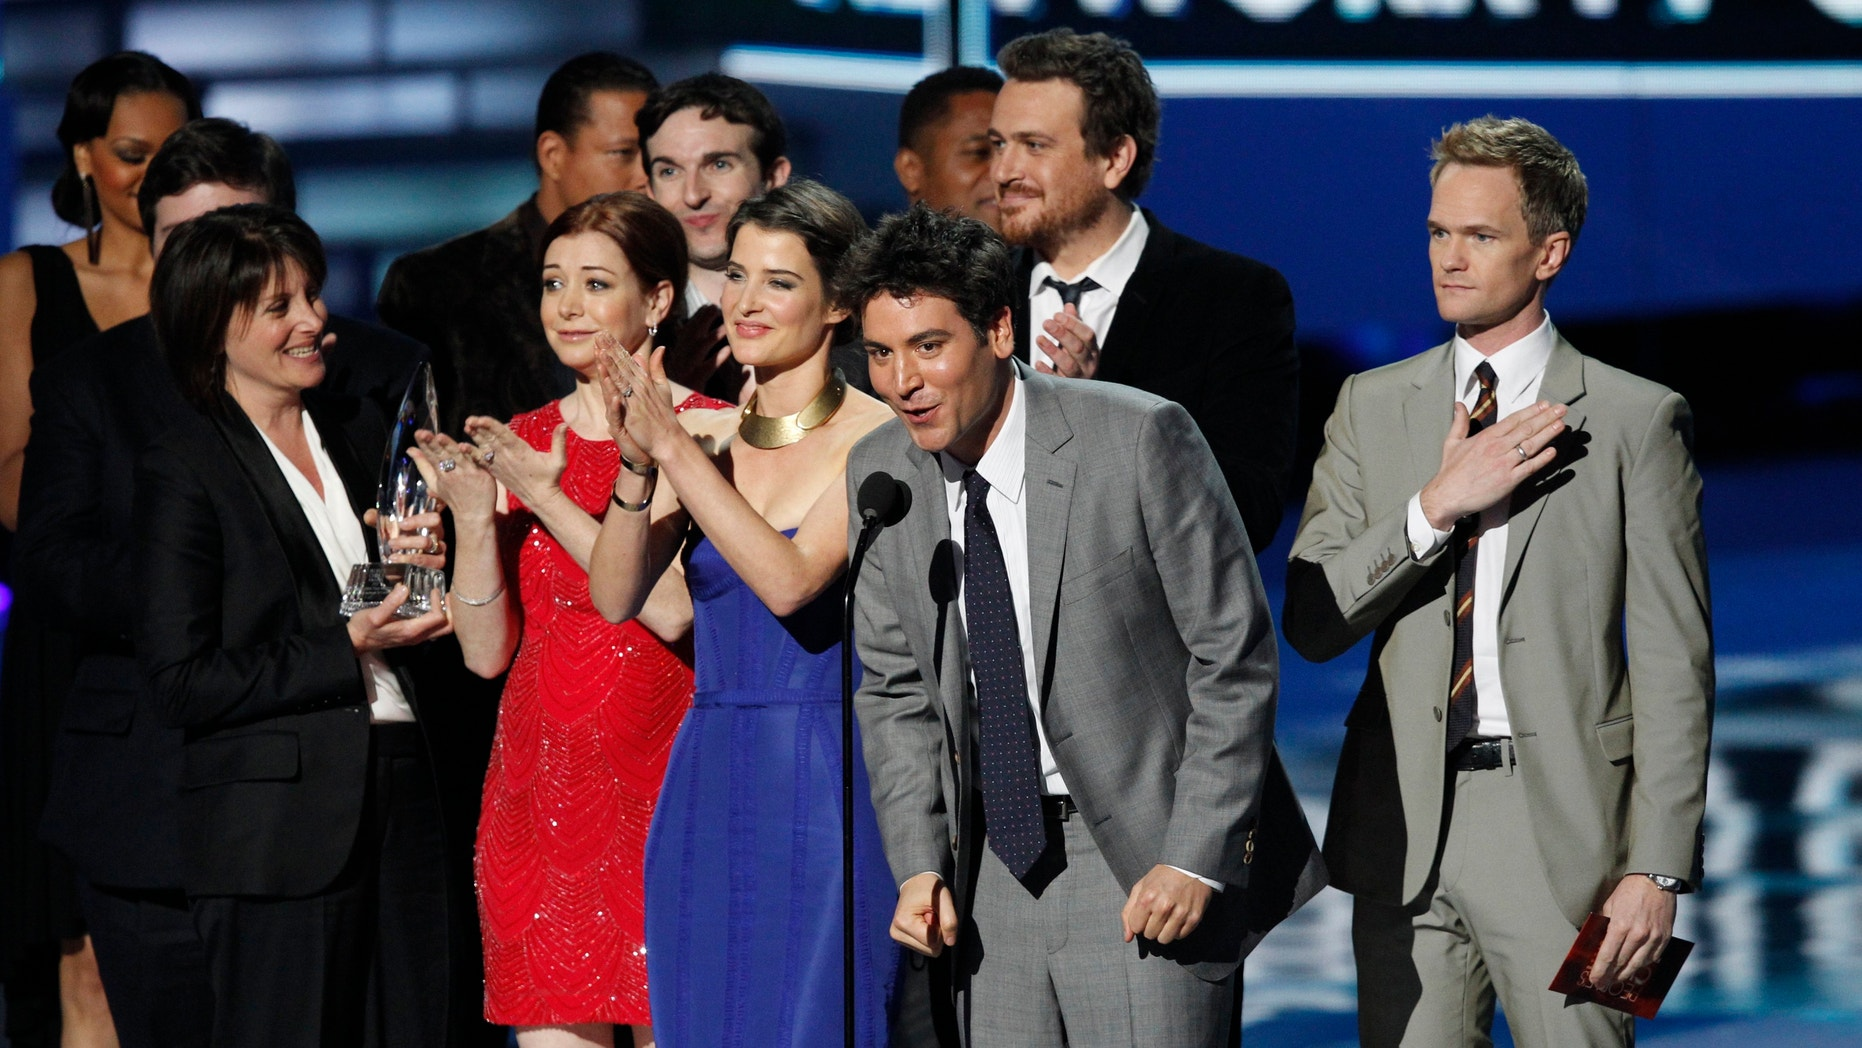 """Actor Josh Radnor, center, accepts the Favorite Network TV Comedy award for TV series """"How I Met Your Mother"""" at the 2012 People's Choice Awards in Los Angeles January 11, 2012."""